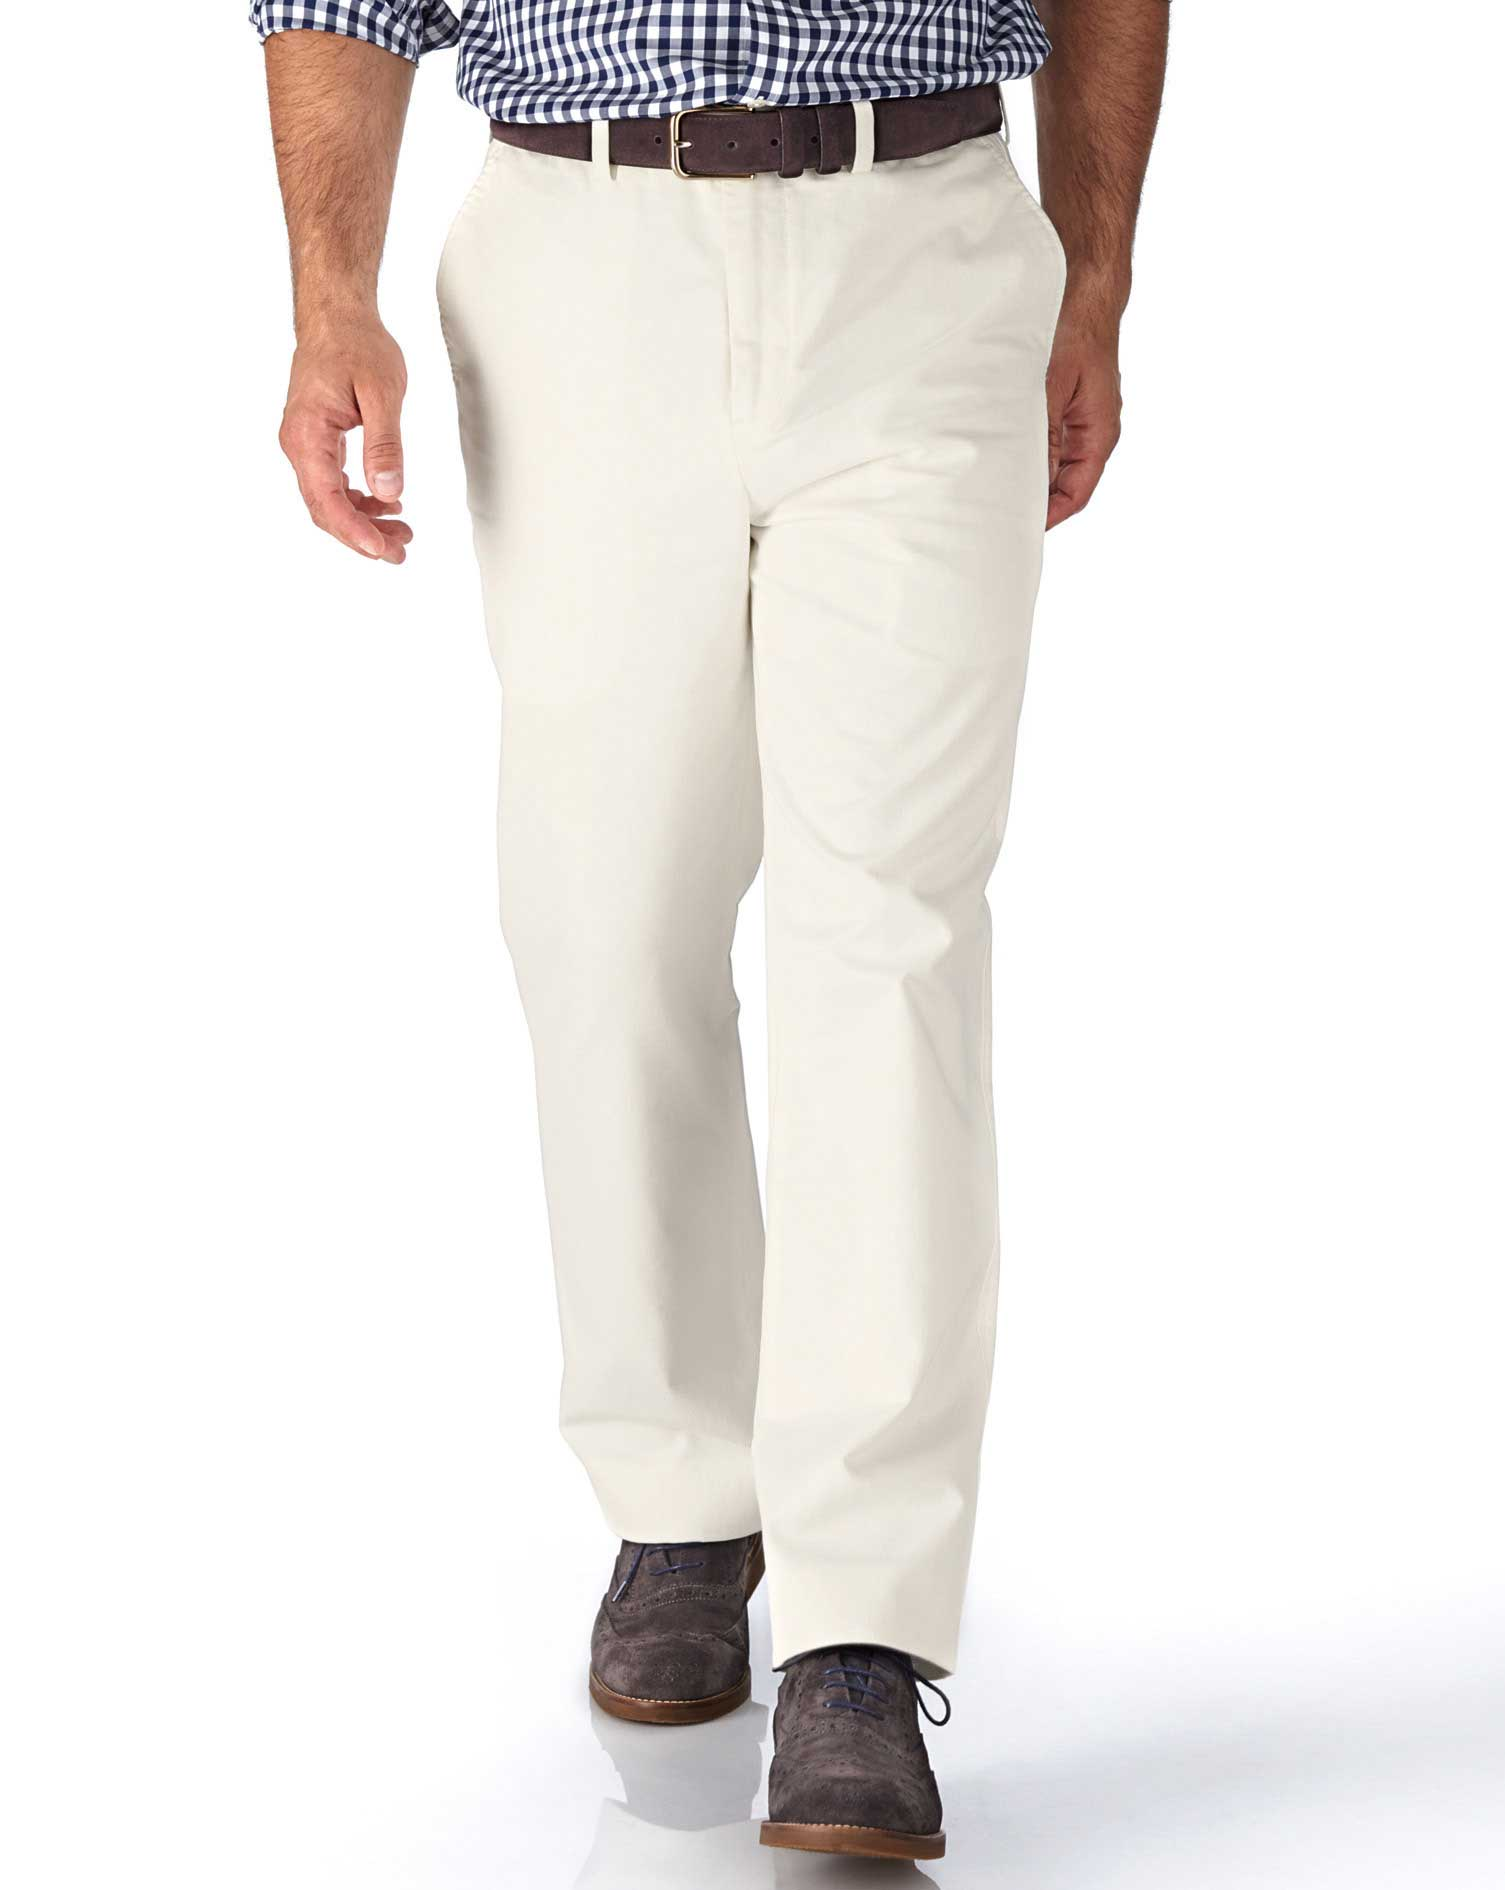 White Classic Fit Flat Front Weekend Cotton Chino Trousers Size W40 L32 by Charles Tyrwhitt